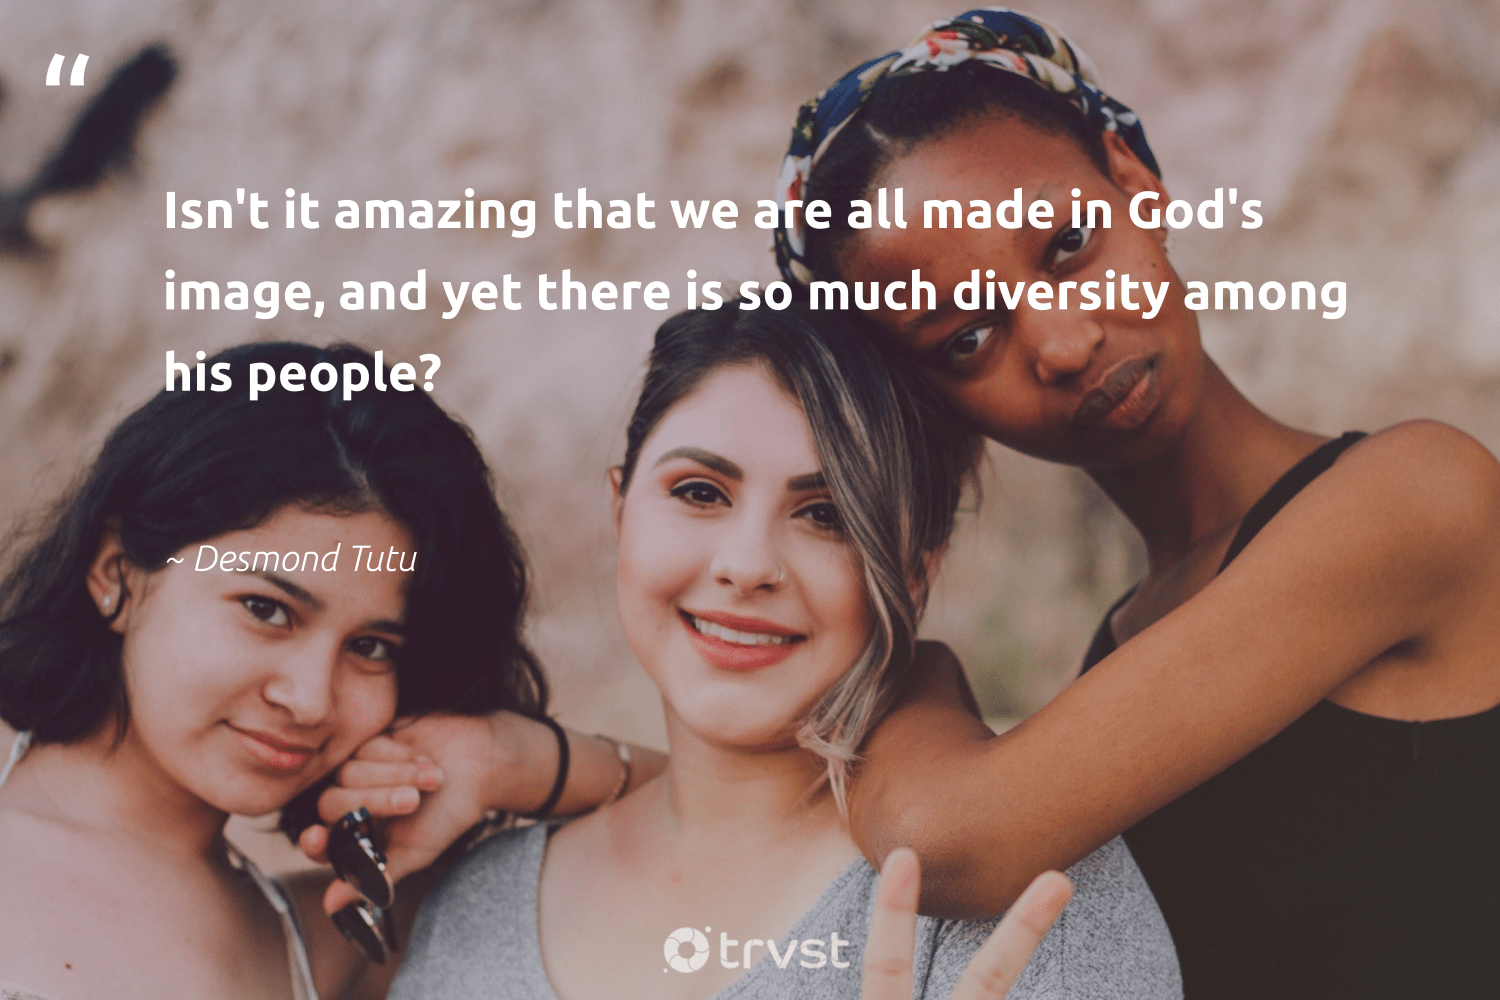 """Isn't it amazing that we are all made in God's image, and yet there is so much diversity among his people?""  - Desmond Tutu #trvst #quotes #diversity #inclusion #representationmatters #bethechange #makeadifference #dotherightthing #discrimination #weareallone #giveback #ecoconscious"